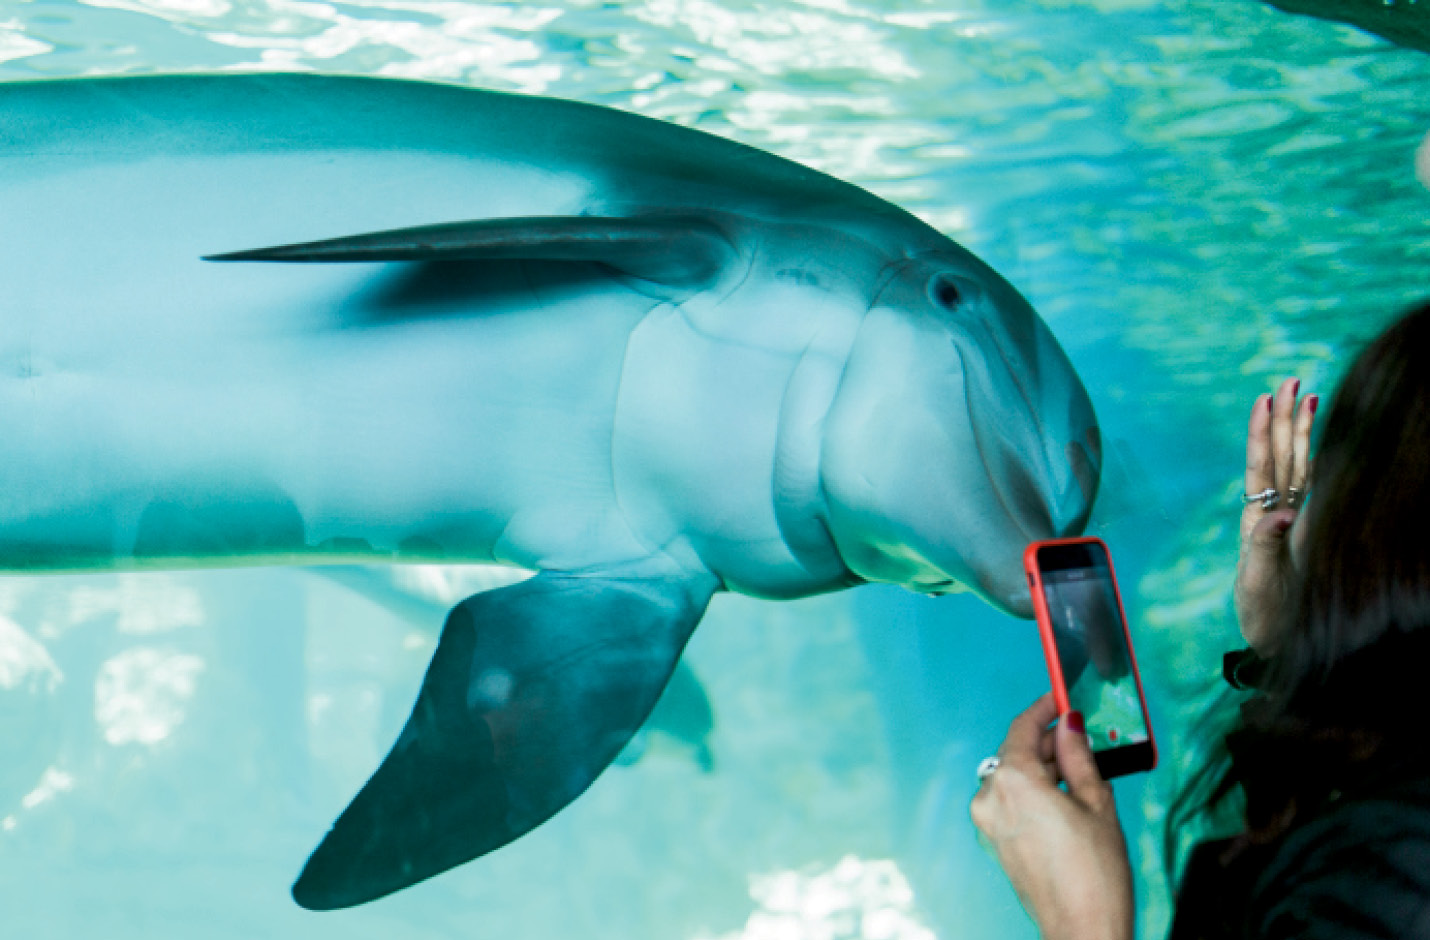 "Captivating & Captive: The Marine Mammal Protection Act prohibits the ""take"" of wild marine mammals, including dolphins, without a permit. Some animals born in captivity remain in controlled environments, such as at Marineland, a former amusement park in Florida that's now part of the Georgia Aquarium dolphin conservation program."